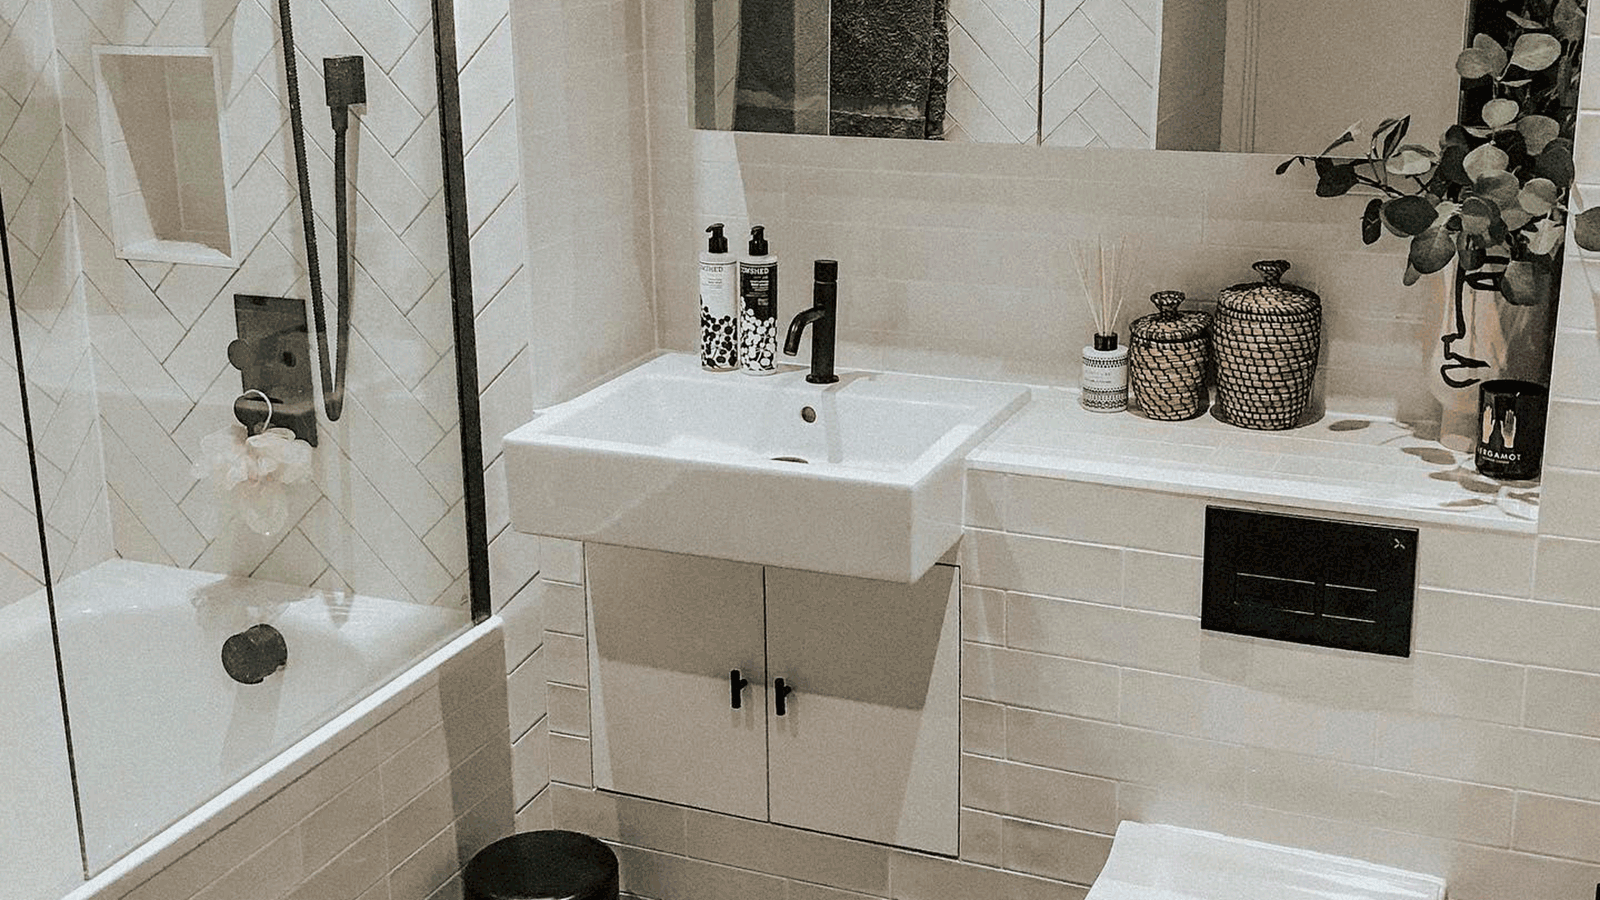 Trendy bathroom layouts using metro tiles